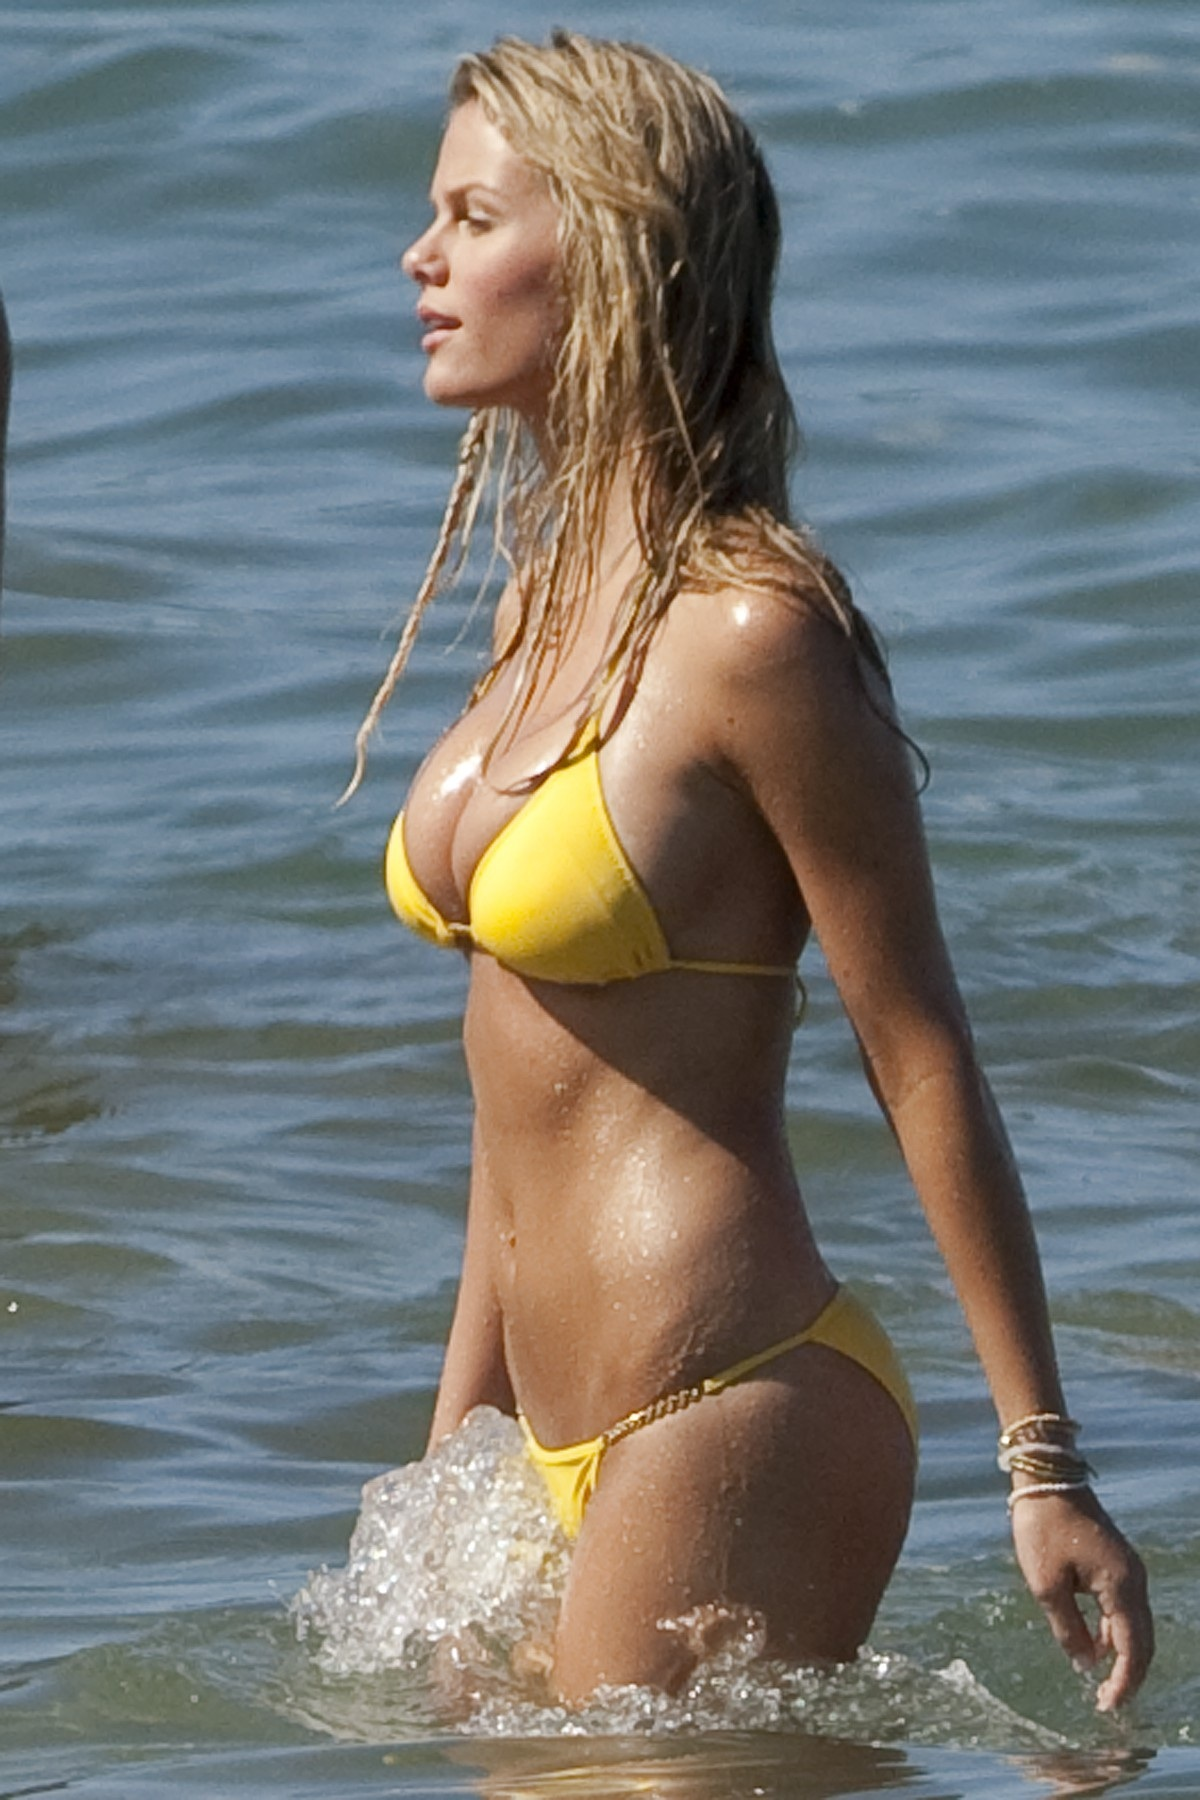 Brooklyn Decker Bikini Bikini